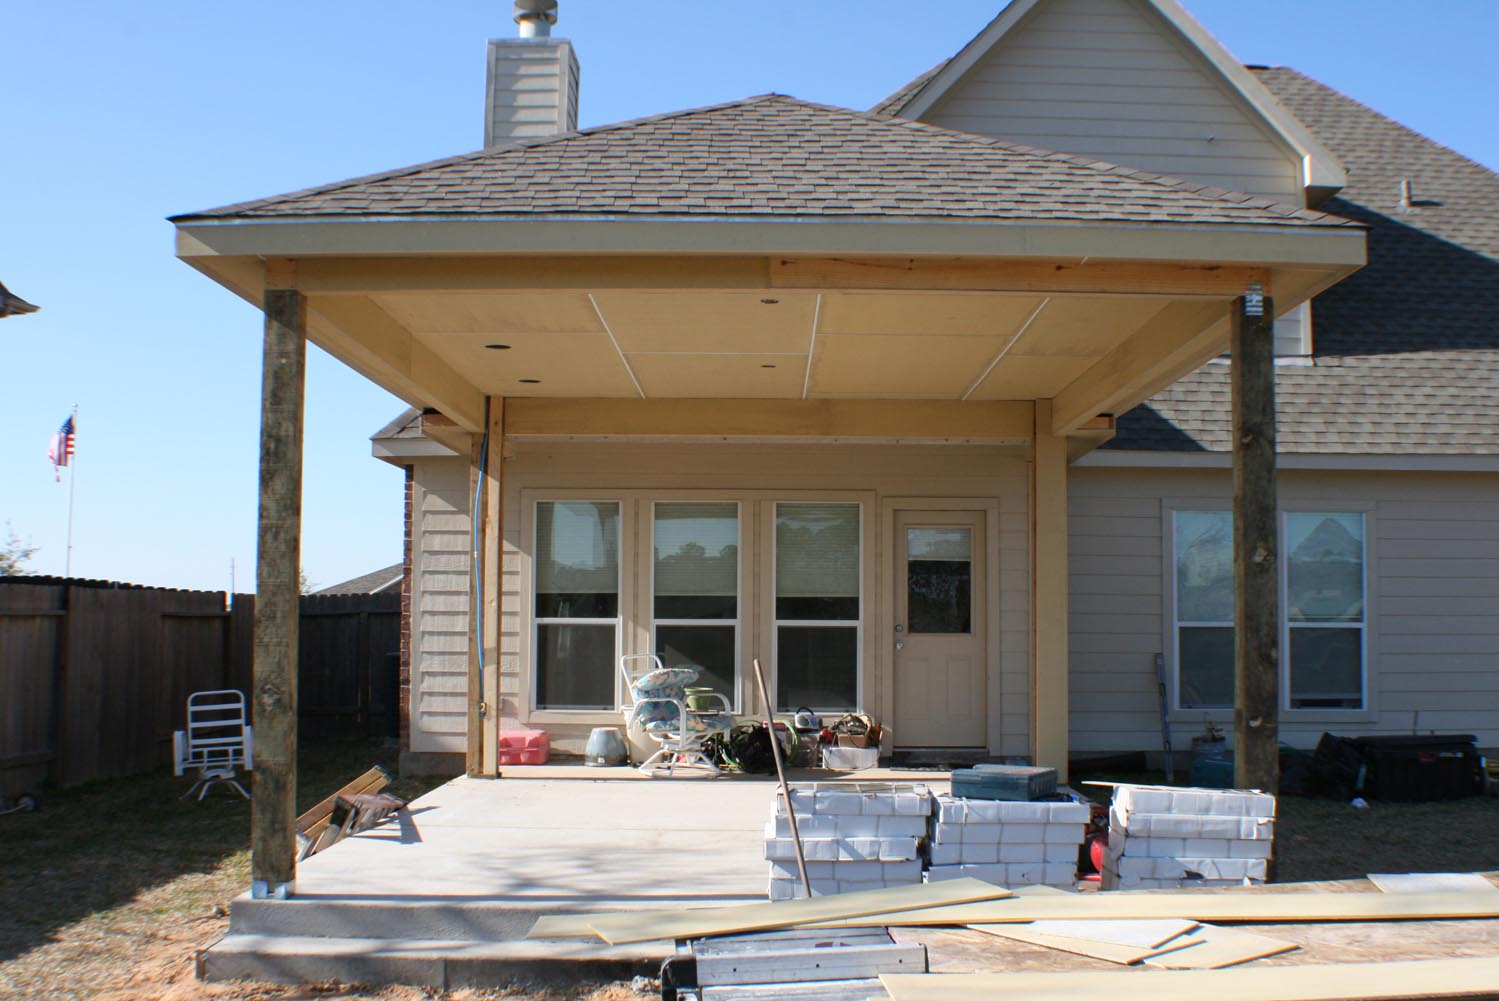 16 by 20 Patio Cover + Outdoor Kitchen - HHI Patio Covers on Backyard Patio Cover  id=23018